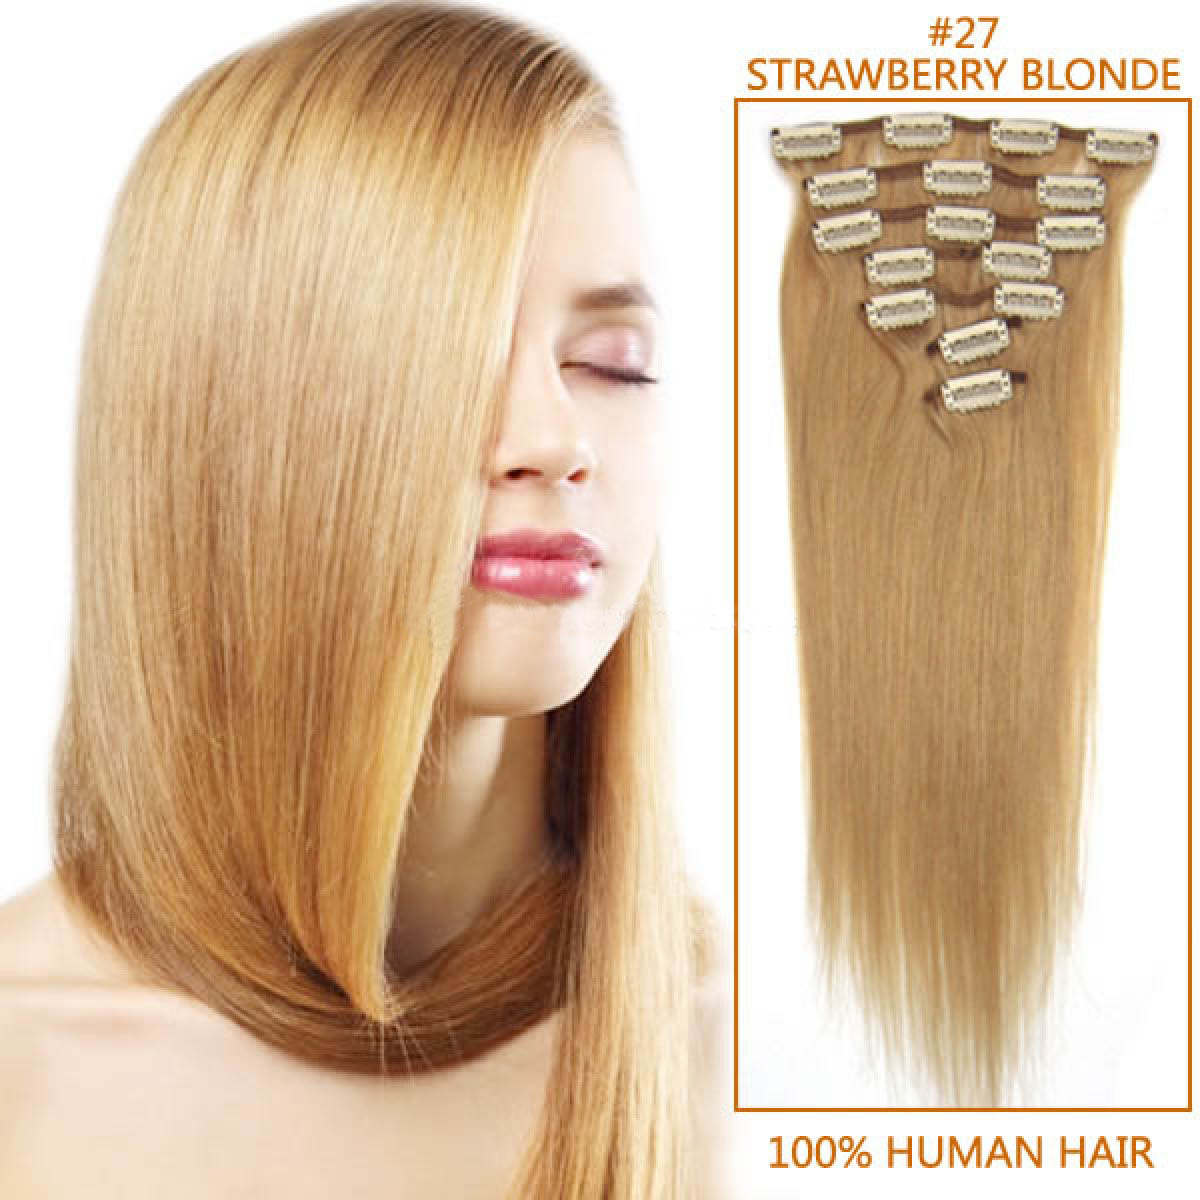 15 Inch 27 Strawberry Blonde Clip In Human Hair Extensions 7pcs